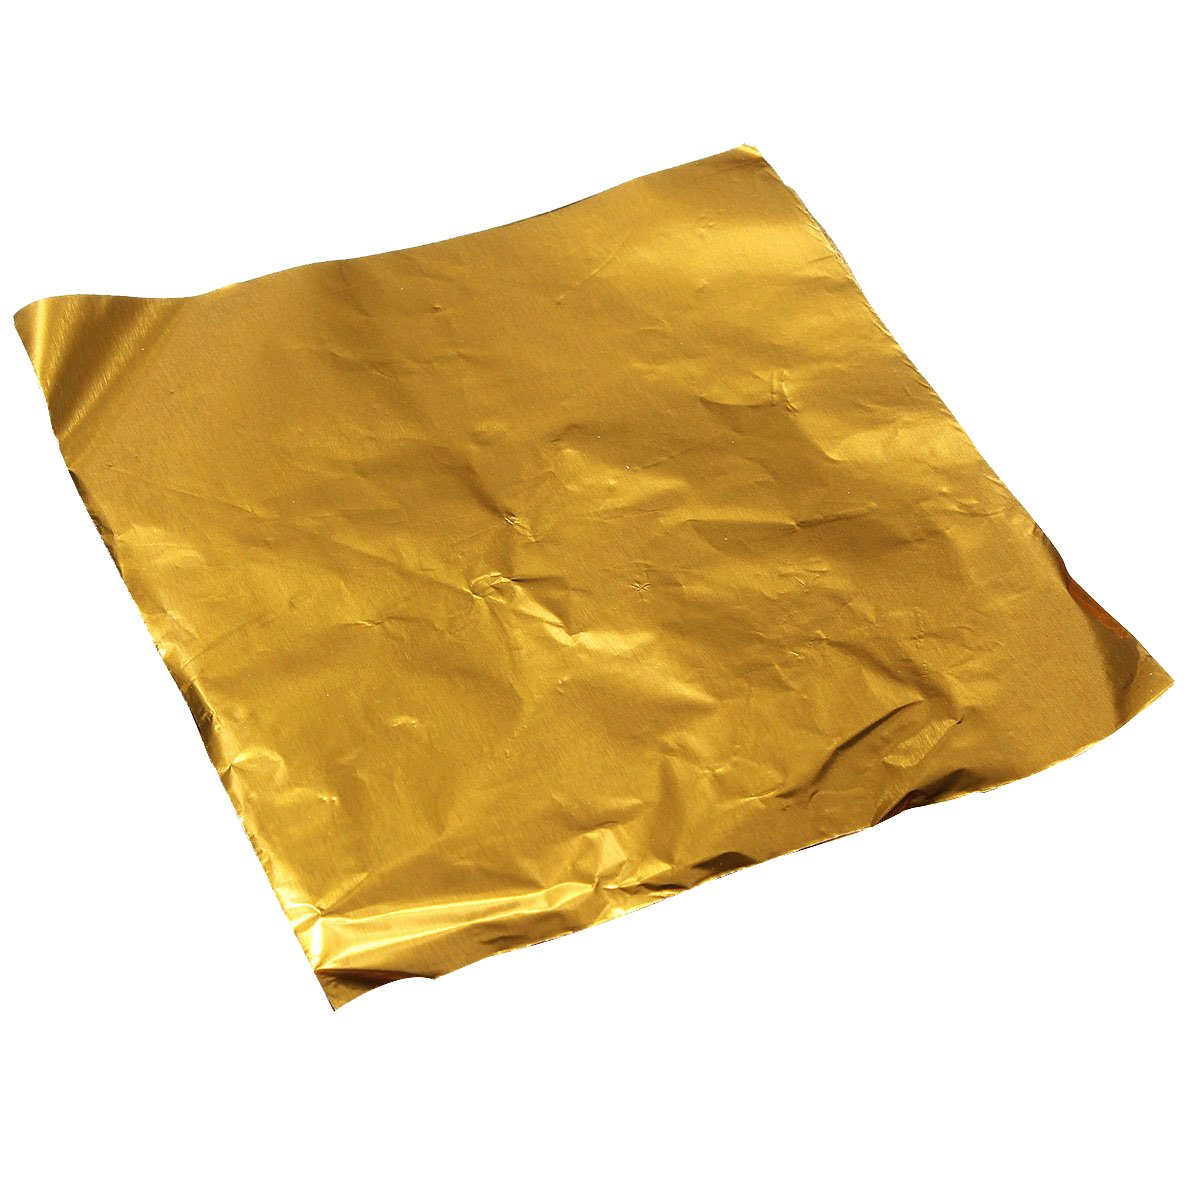 TOOGOO(R) 100pcs Square Sweets Candy Chocolate Lolly Paper Aluminum Foil Wrappers Gold